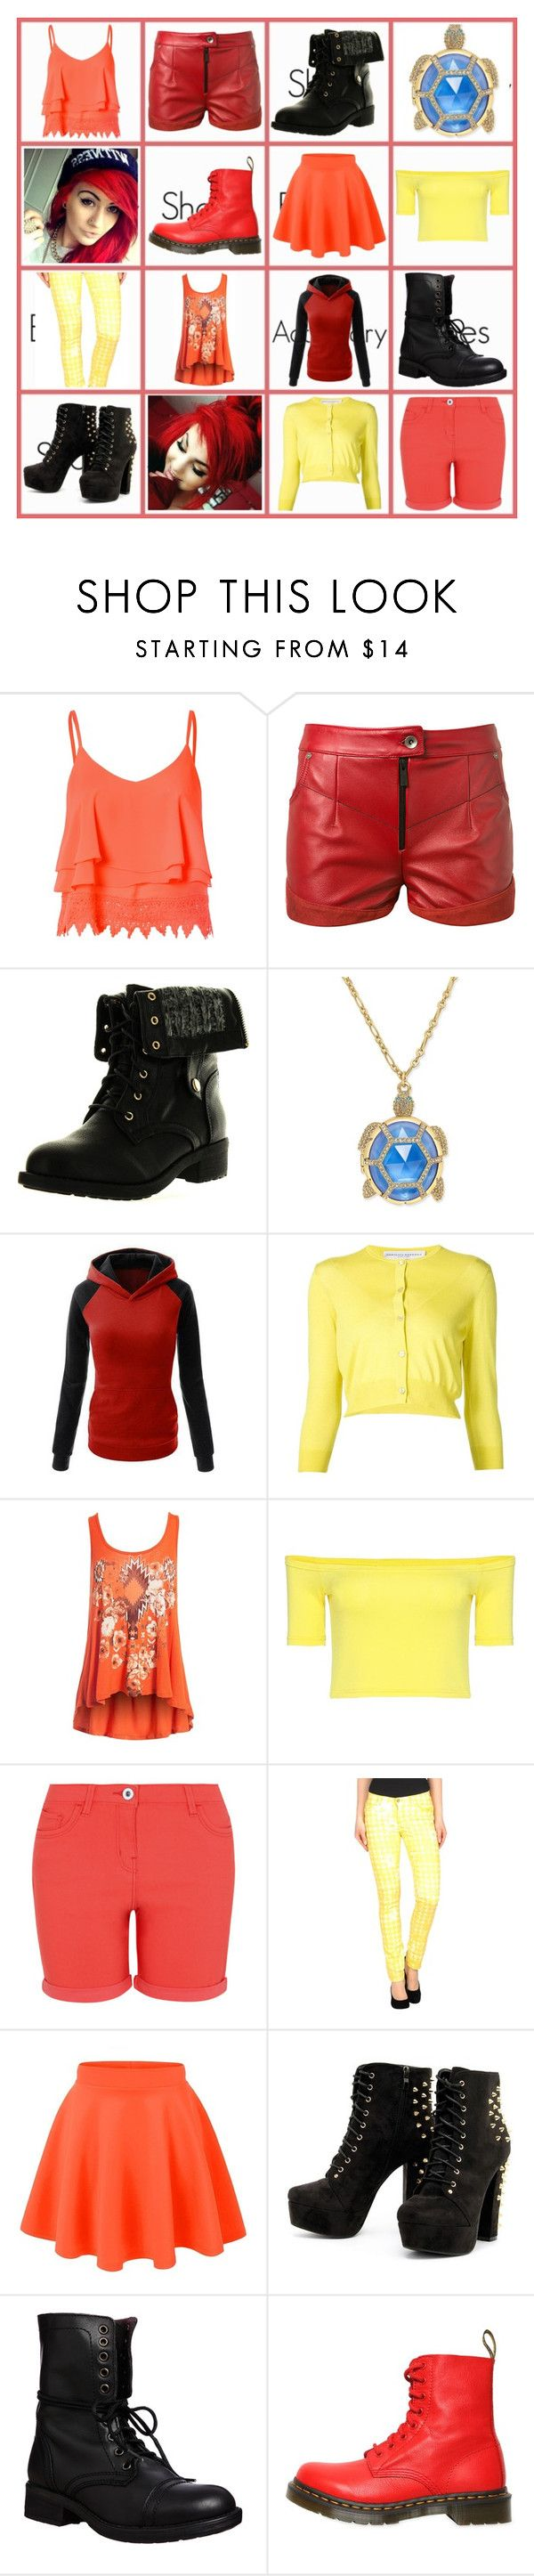 """Ashley Logan#3"" by phoenix-fox ❤ liked on Polyvore featuring Glamorous, Magda Butrym, Refresh, Kate Spade, Carolina Herrera, Sans Souci, George, AMY GEE, Steve Madden and Dr. Martens"